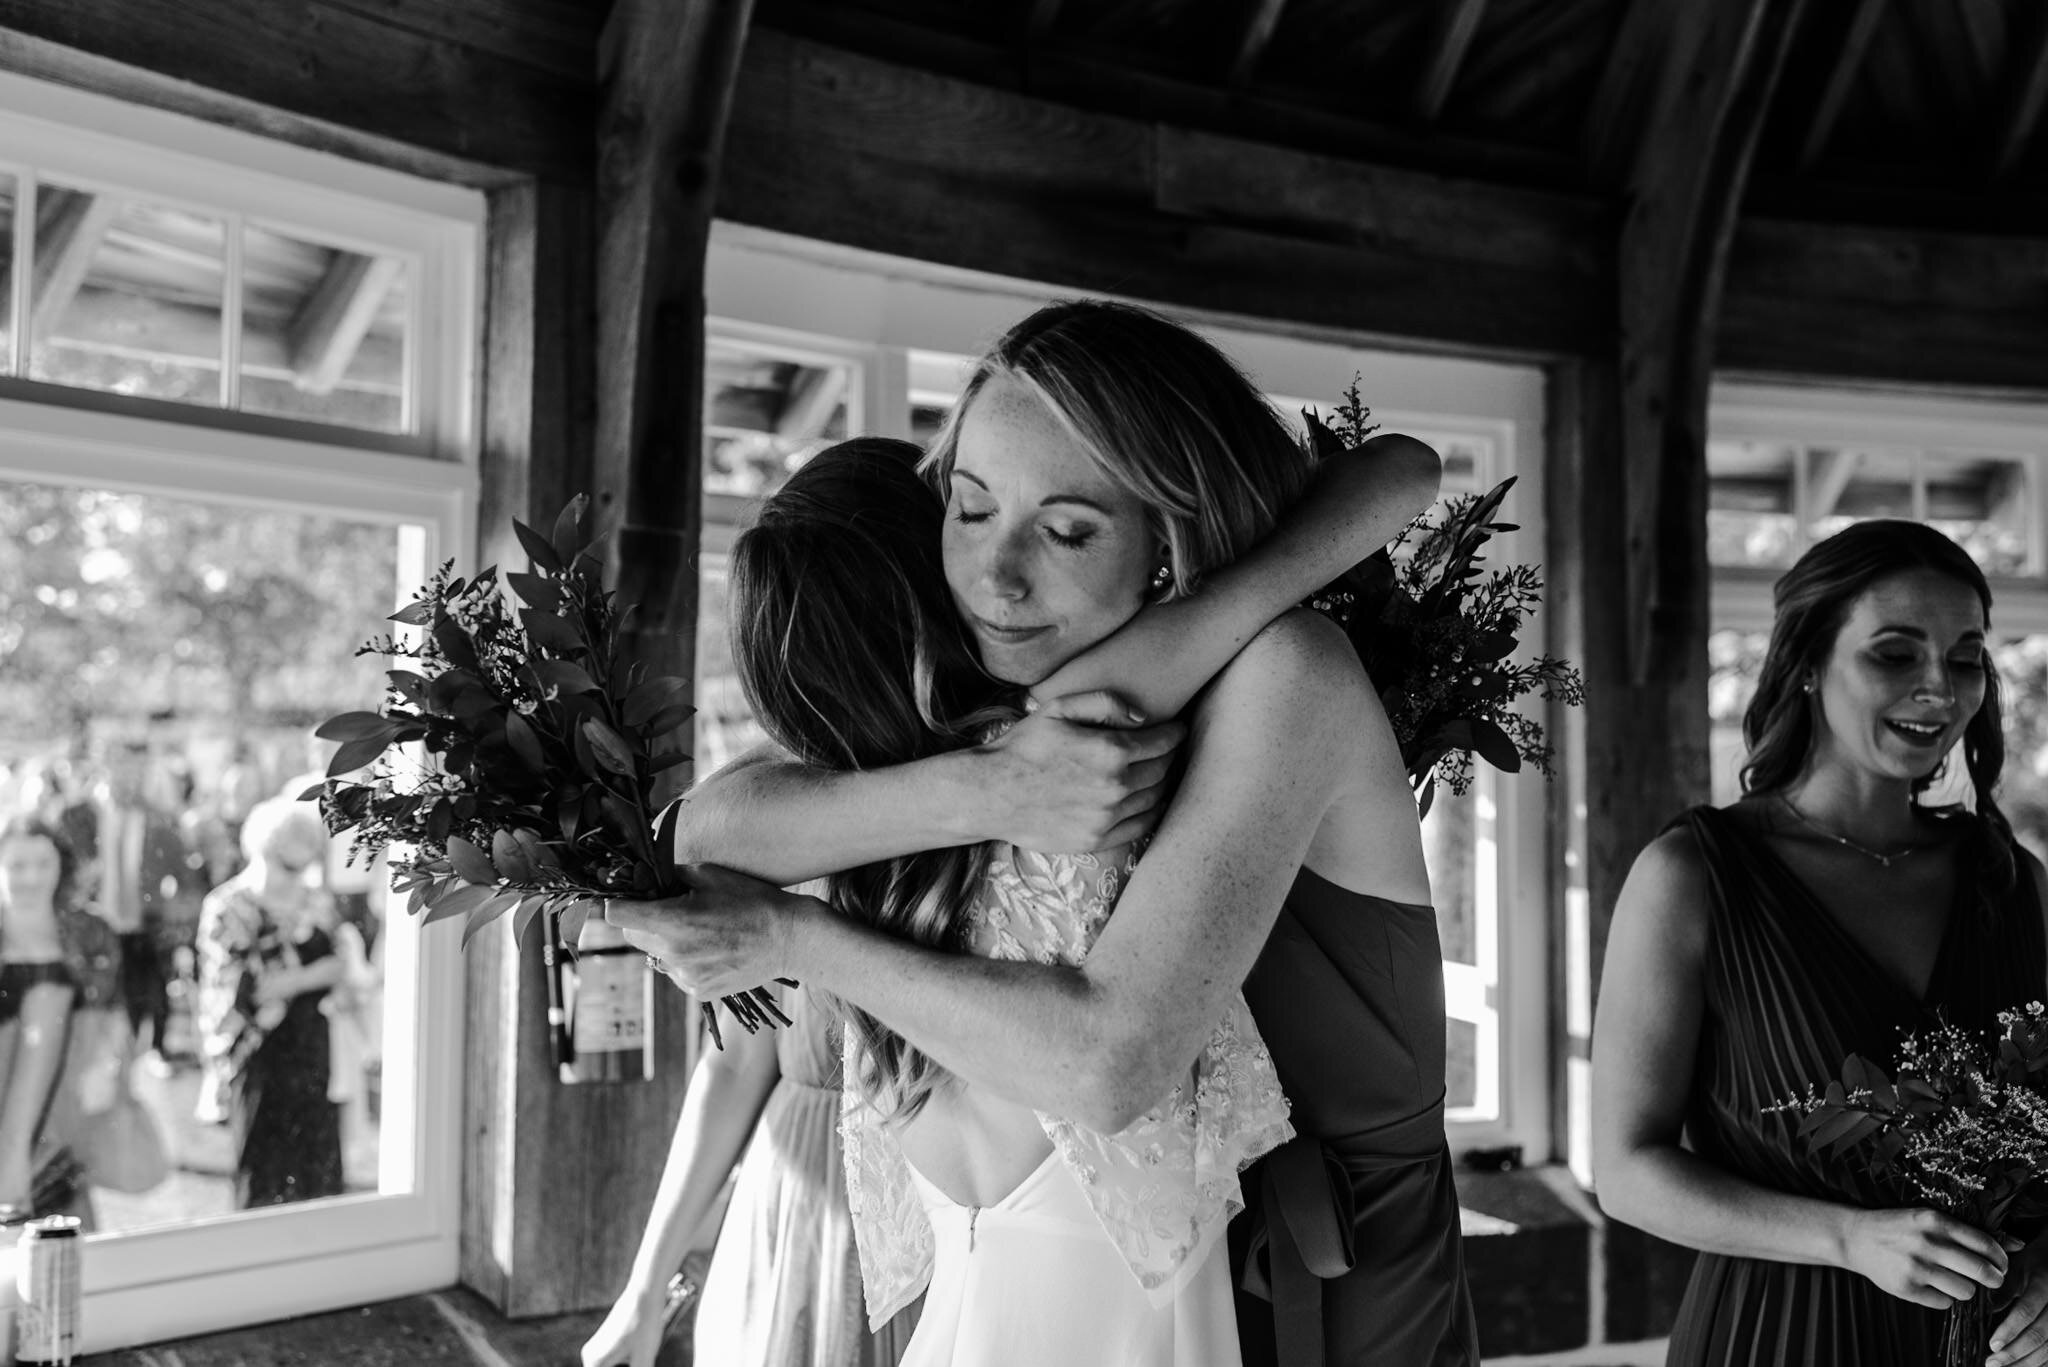 191-sister-bride-cute-moment-post-ceremony-candid-storytelling-wedding-minister-island.jpg